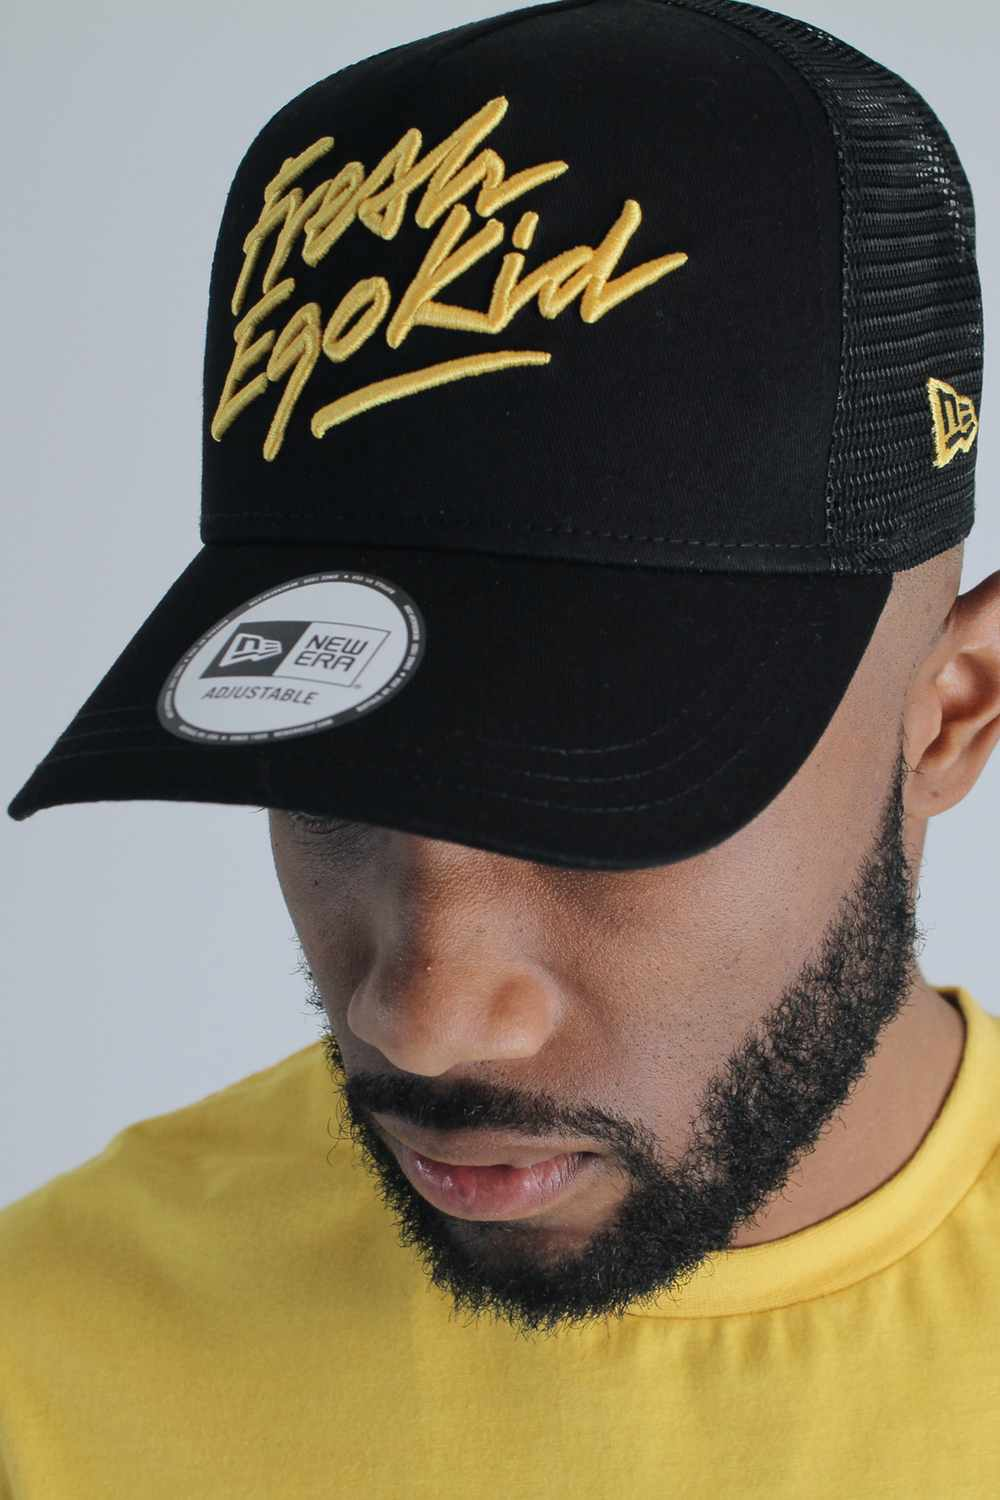 Fresh Ego Kid 9FORTY New Era Trucker Cap - Black/Yellow - 2